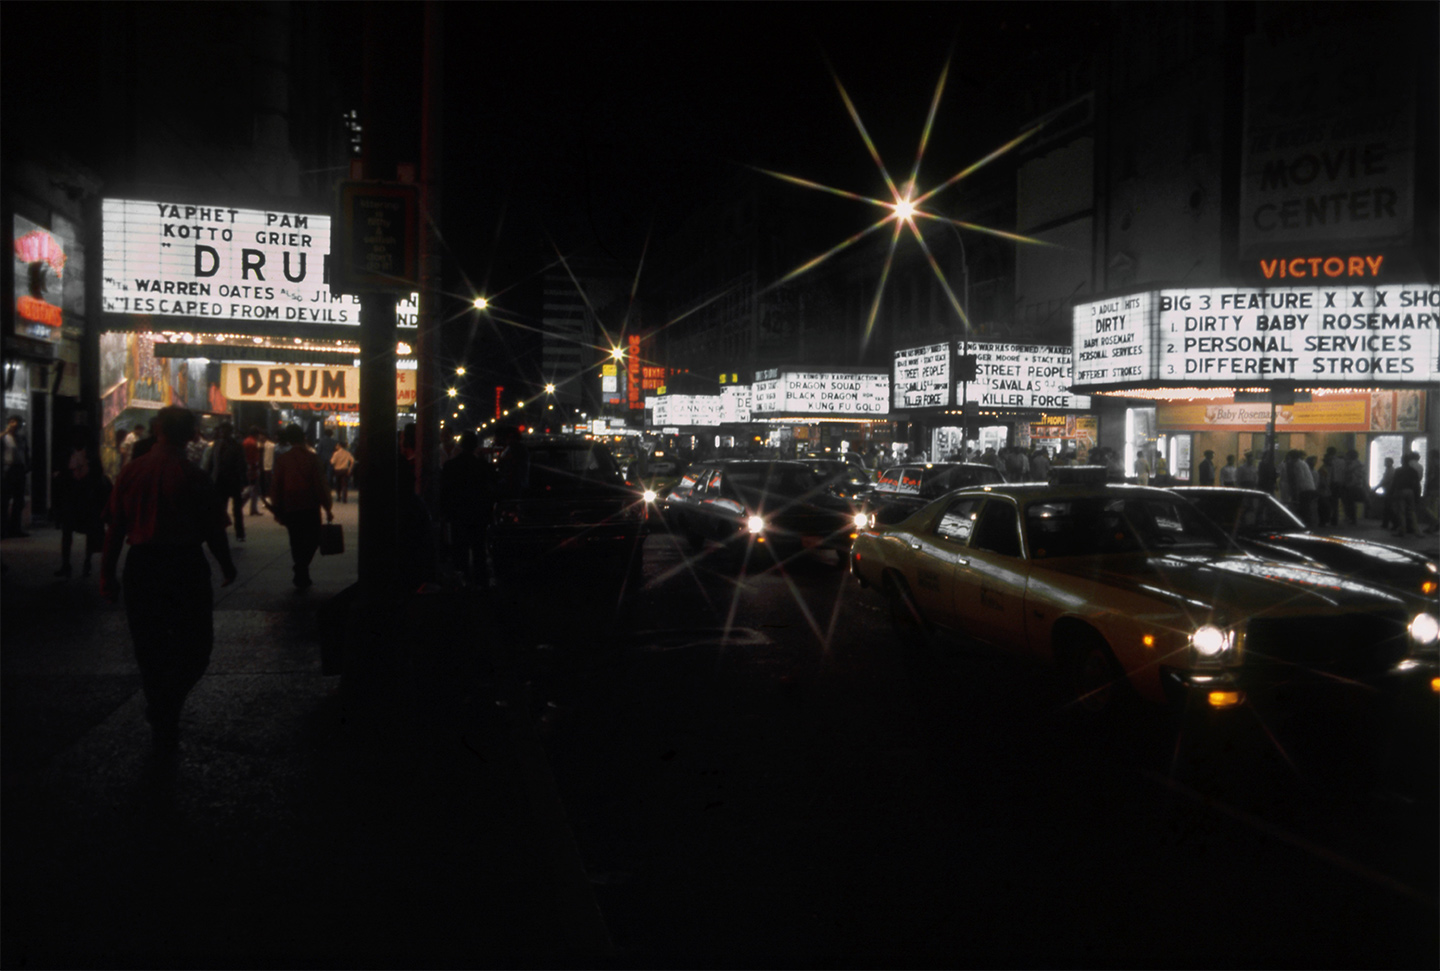 Times Square in the 70s